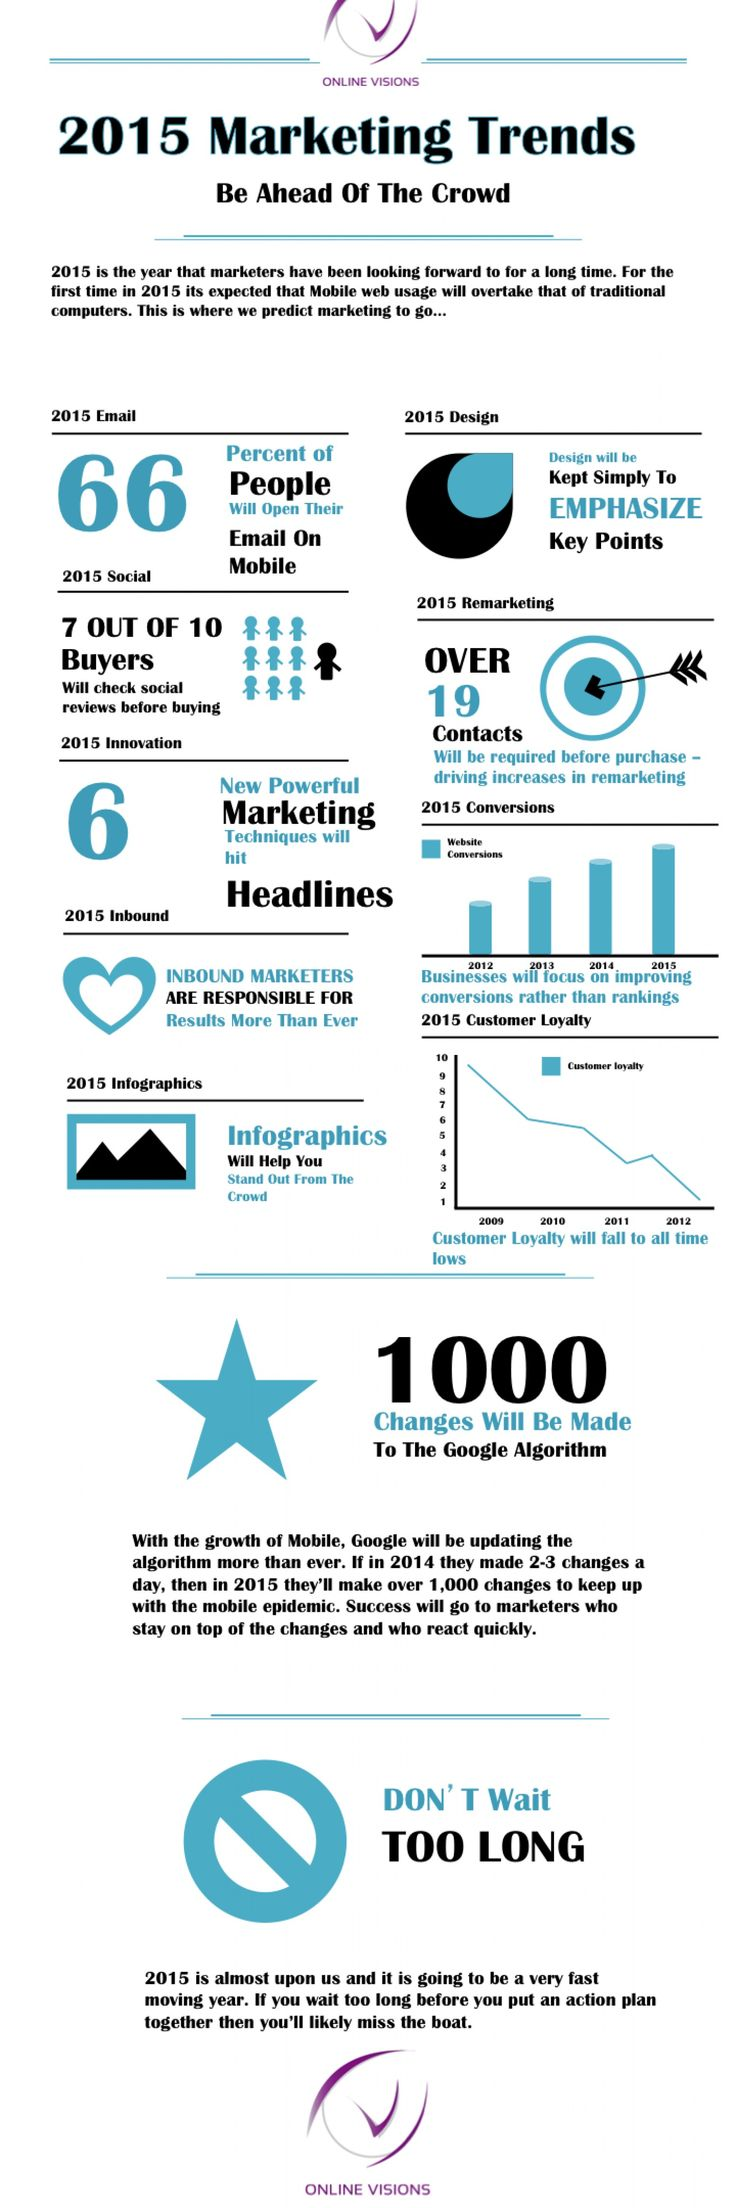 2015 Marketing Predictions Infographic